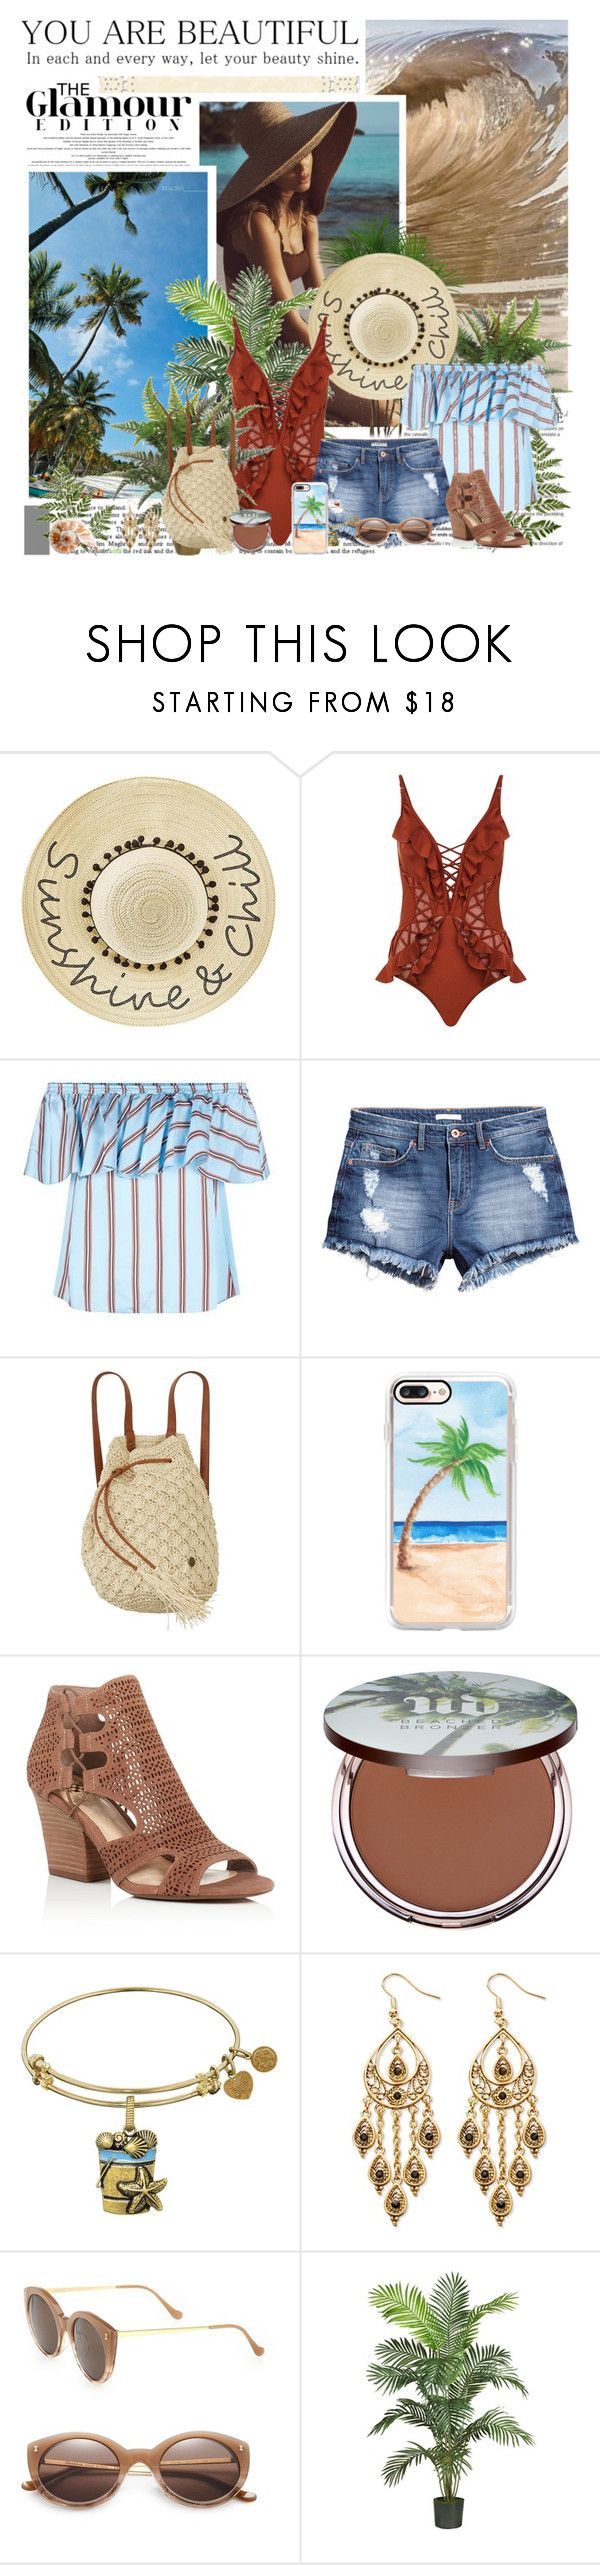 """Cozumel, Mexico"" by seafreak83 ❤ liked on Polyvore featuring Betsey Johnson, Zimmermann, Pinko, H&M, Billabong, Casetify, Vince Camuto, Urban Decay, Palm Beach Jewelry and Illesteva"